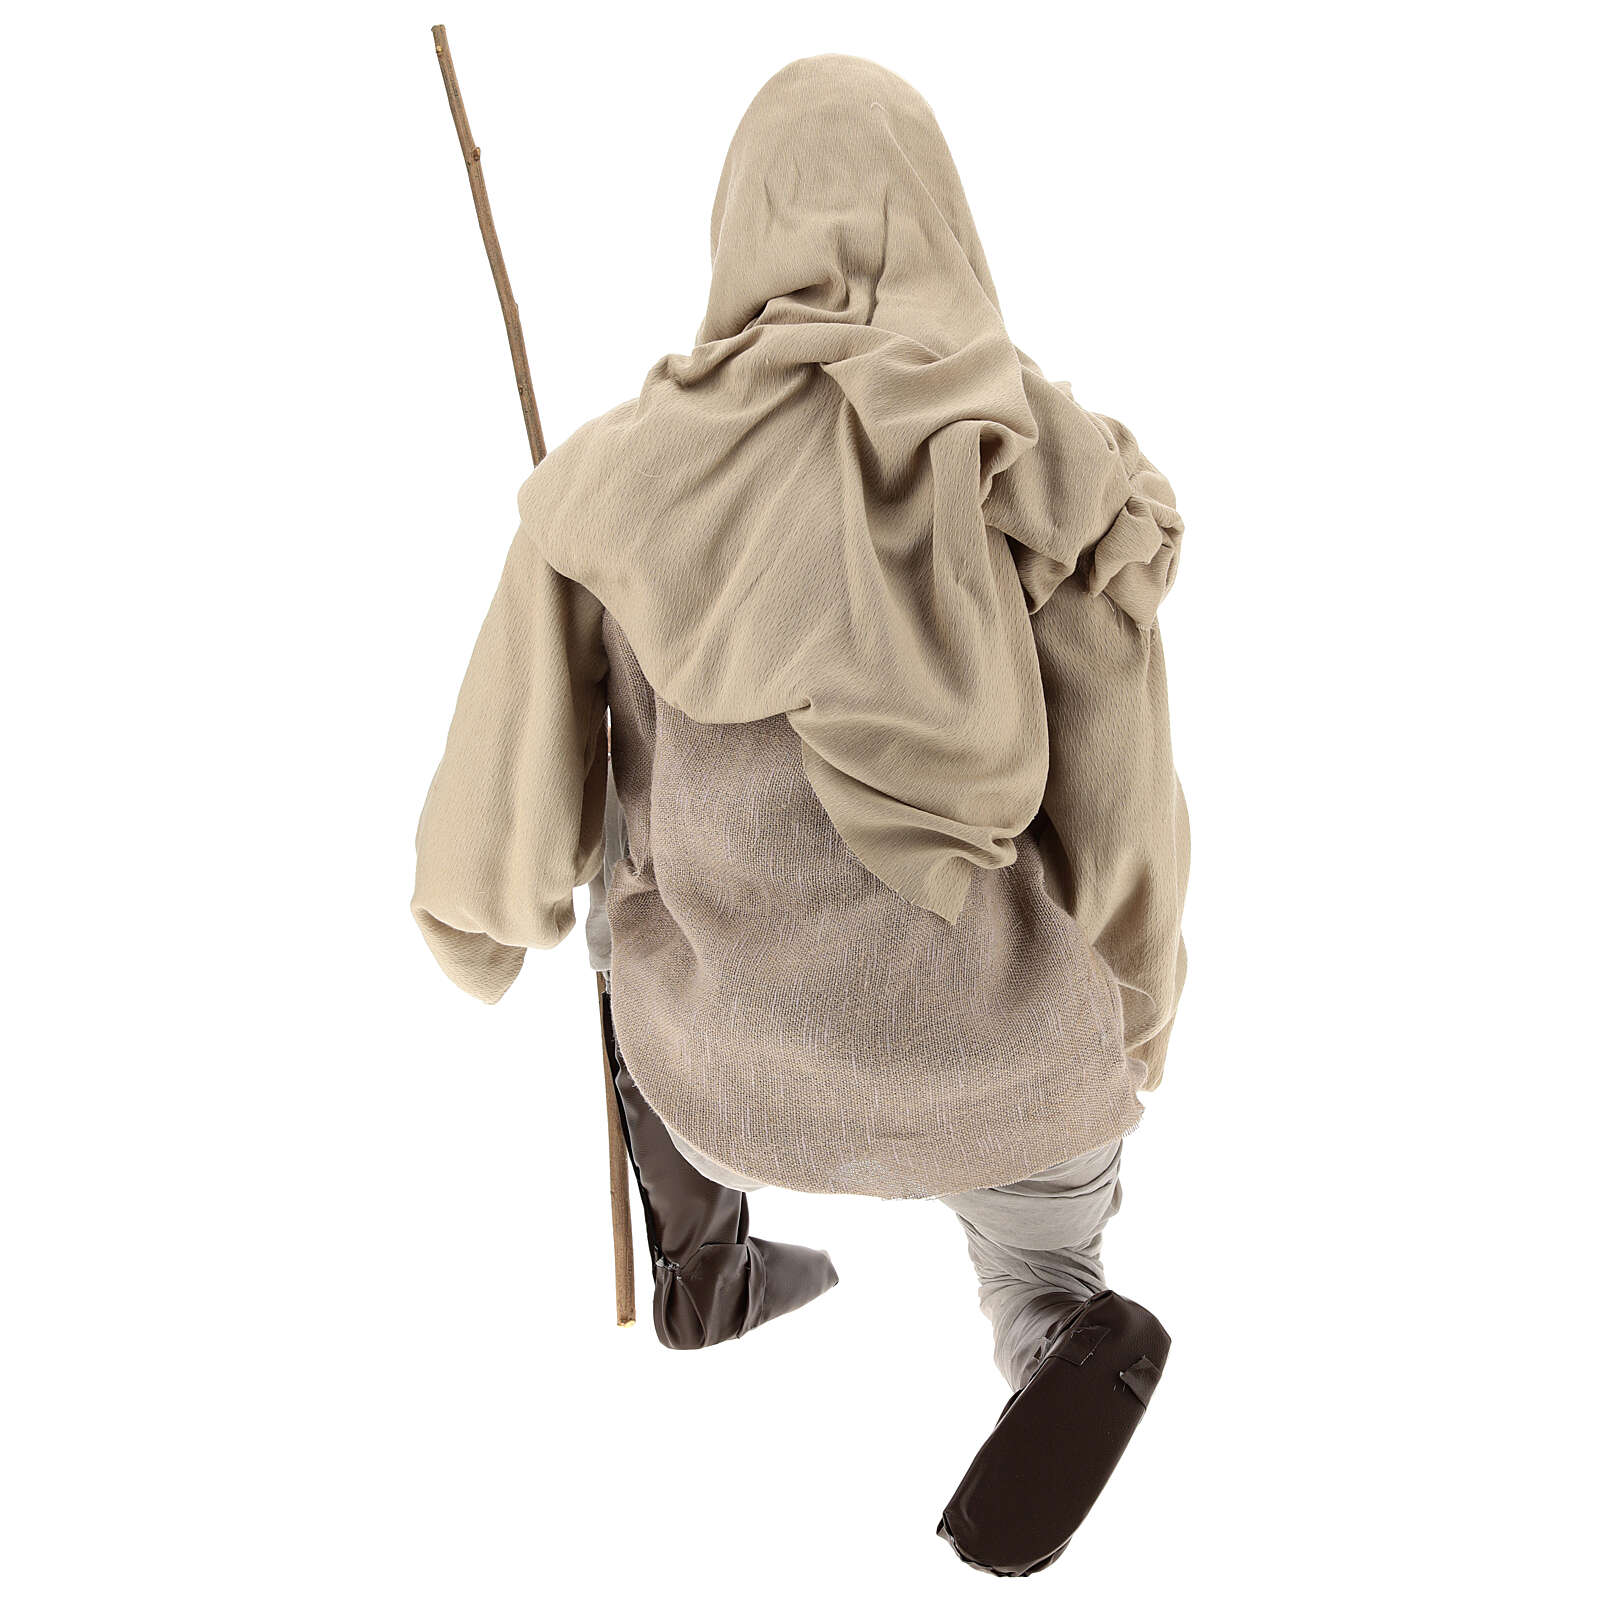 Shepherd 170 cm Life size kneeling in resin and cloth 3